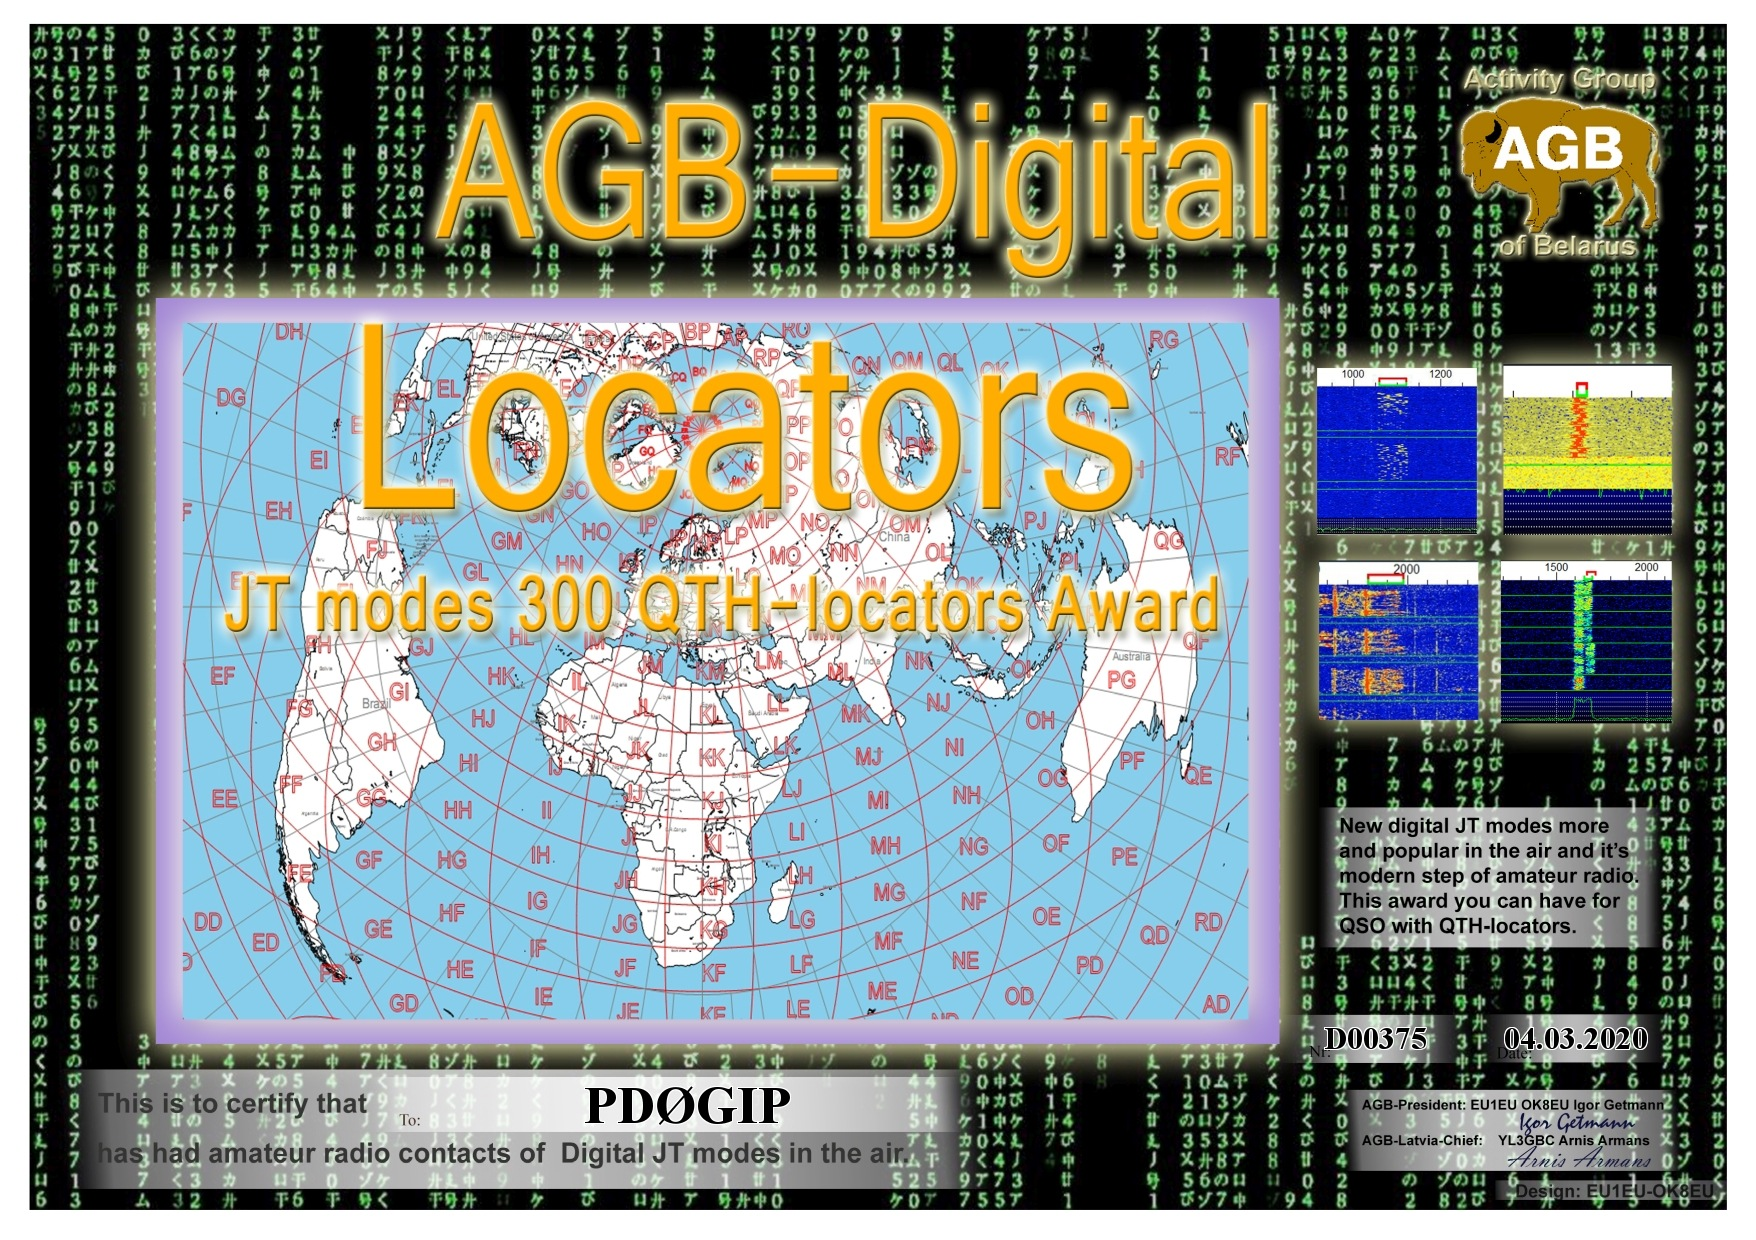 PD0GIP LOCATORS BASIC 300 AGB